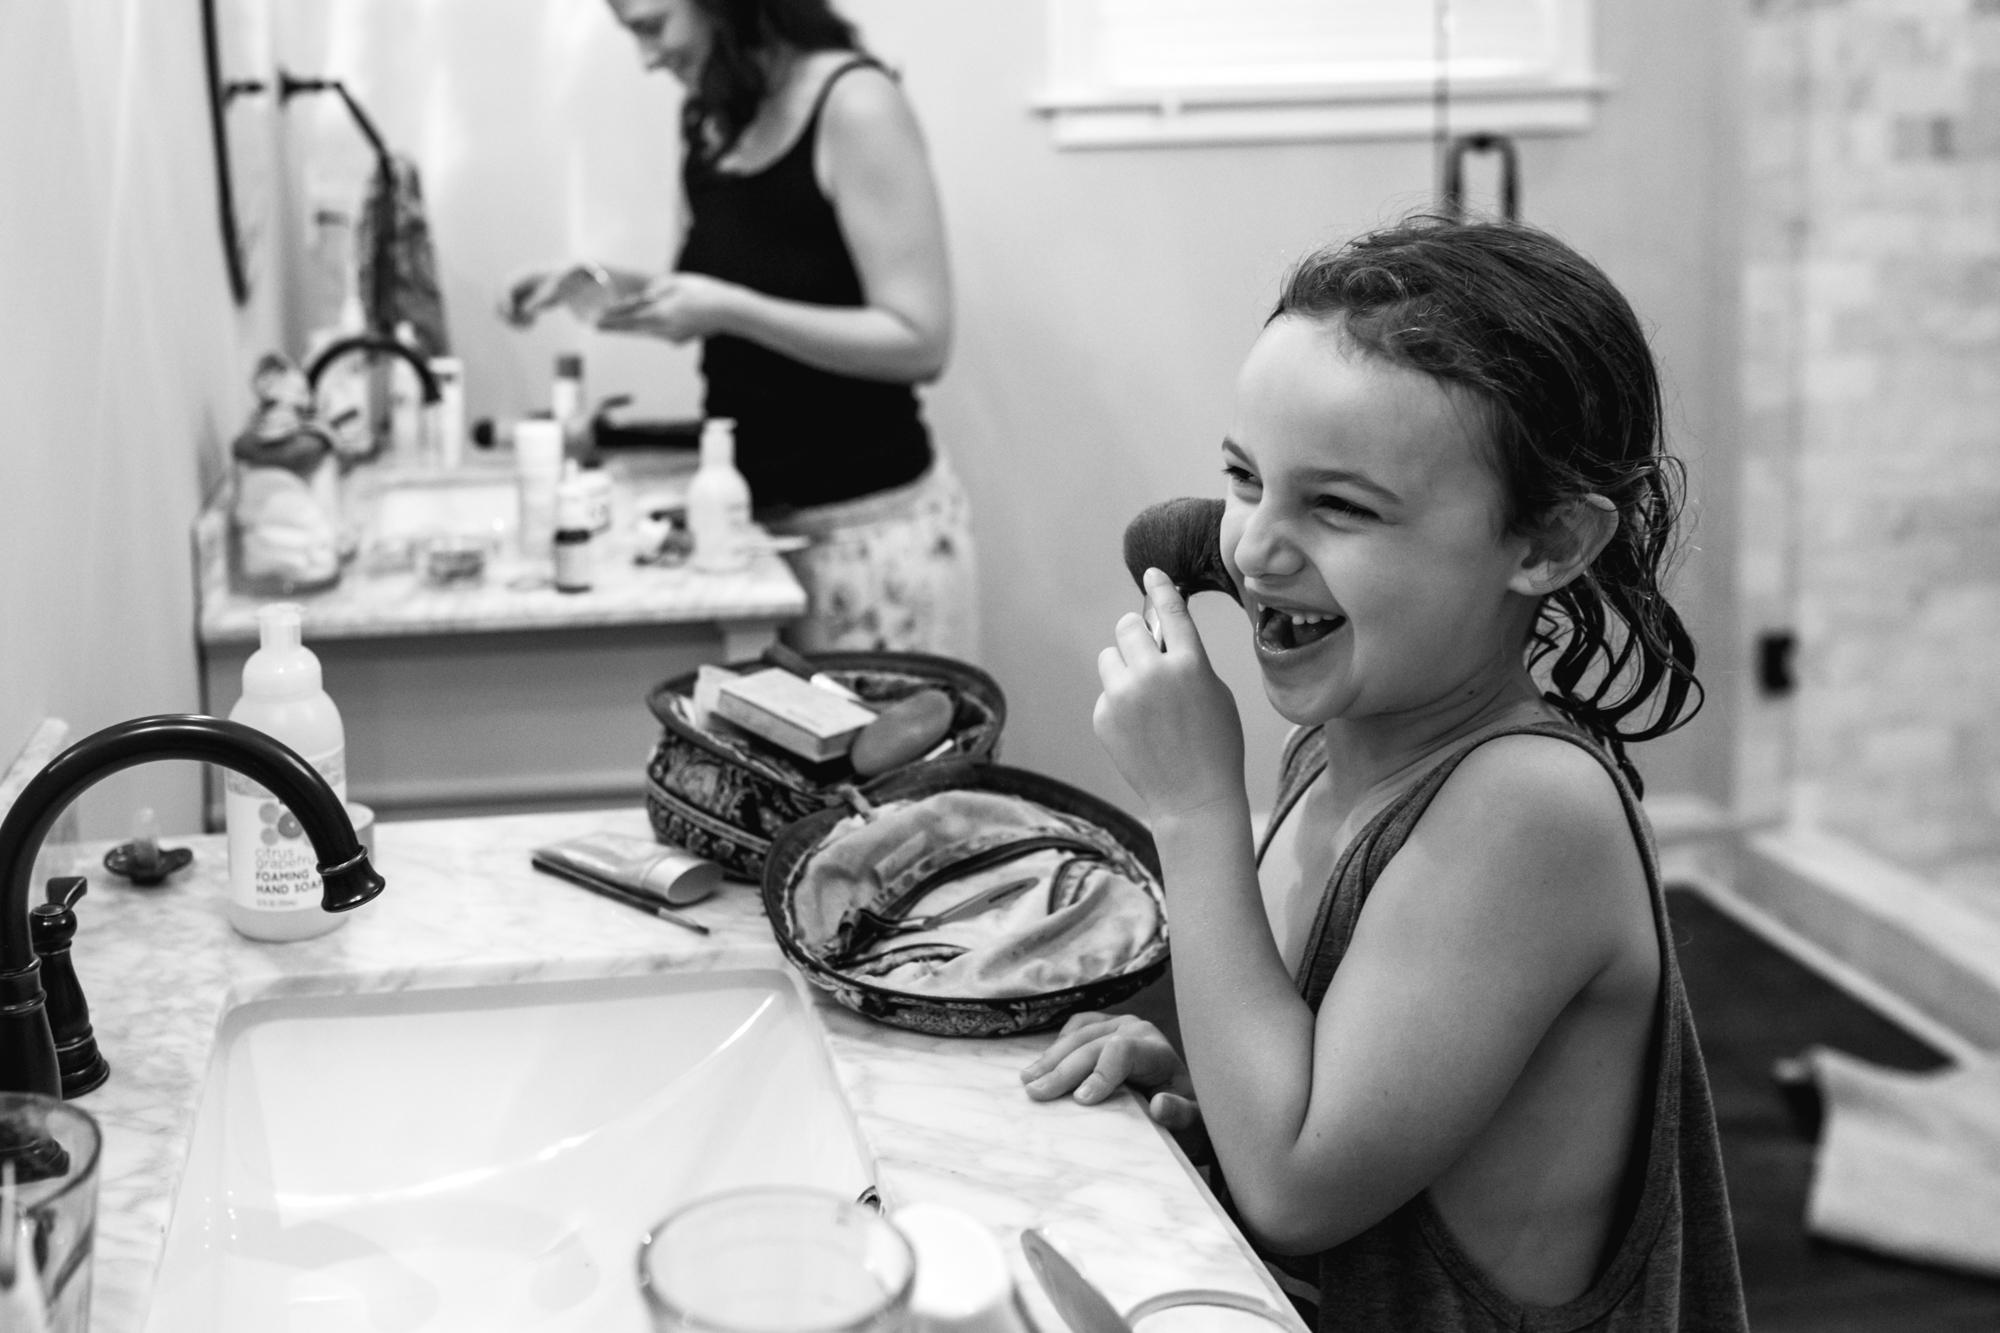 A young girl holds a makeup brush to her cheek and smiles with a toothless smile